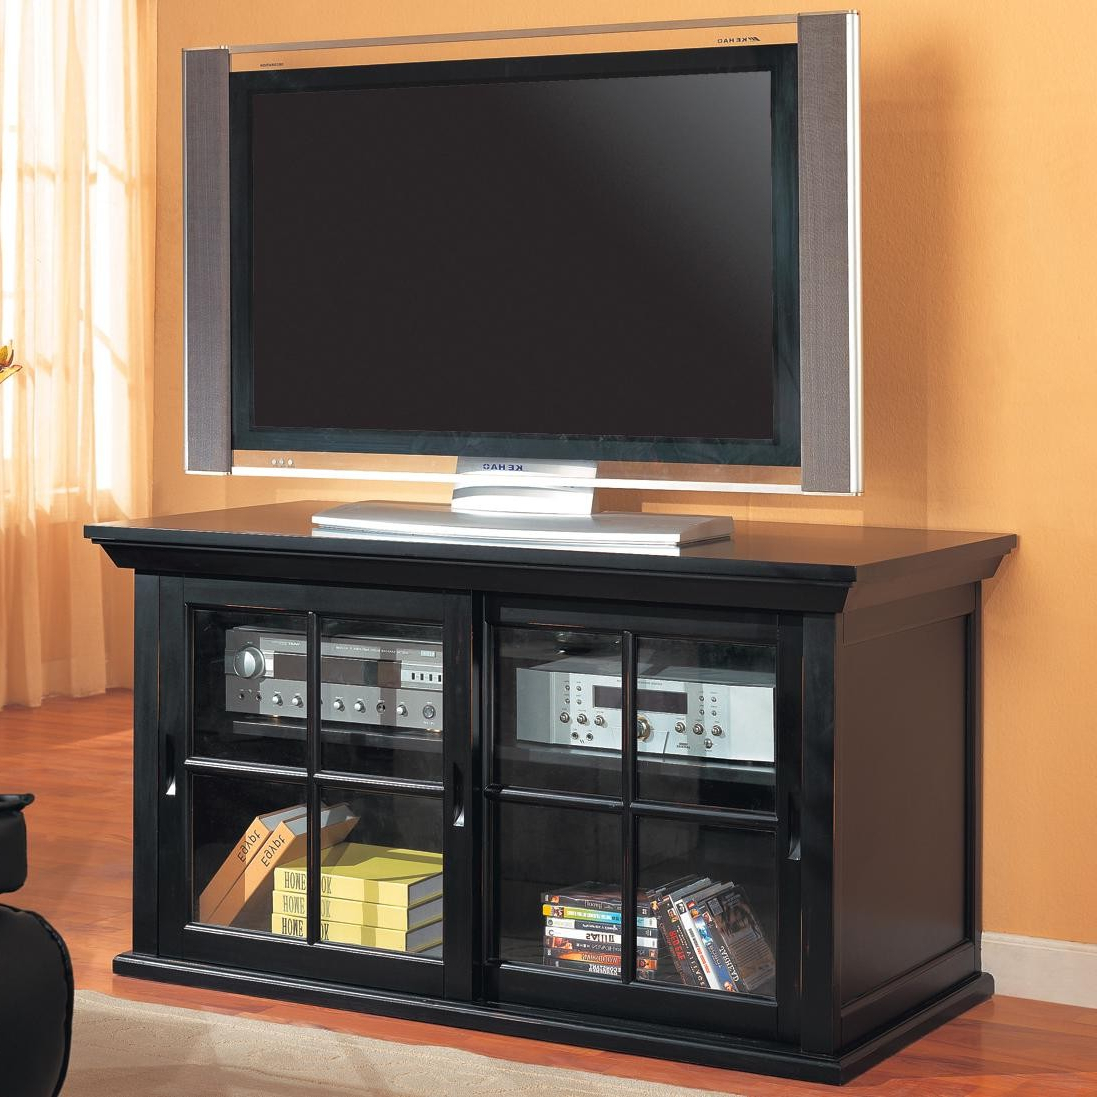 Famous Wooden Tv Stands With Glass Doors With Regard To Small Tv Cabinet With Glass Tv Cabinet With Glass Doors Bathroom (View 4 of 20)